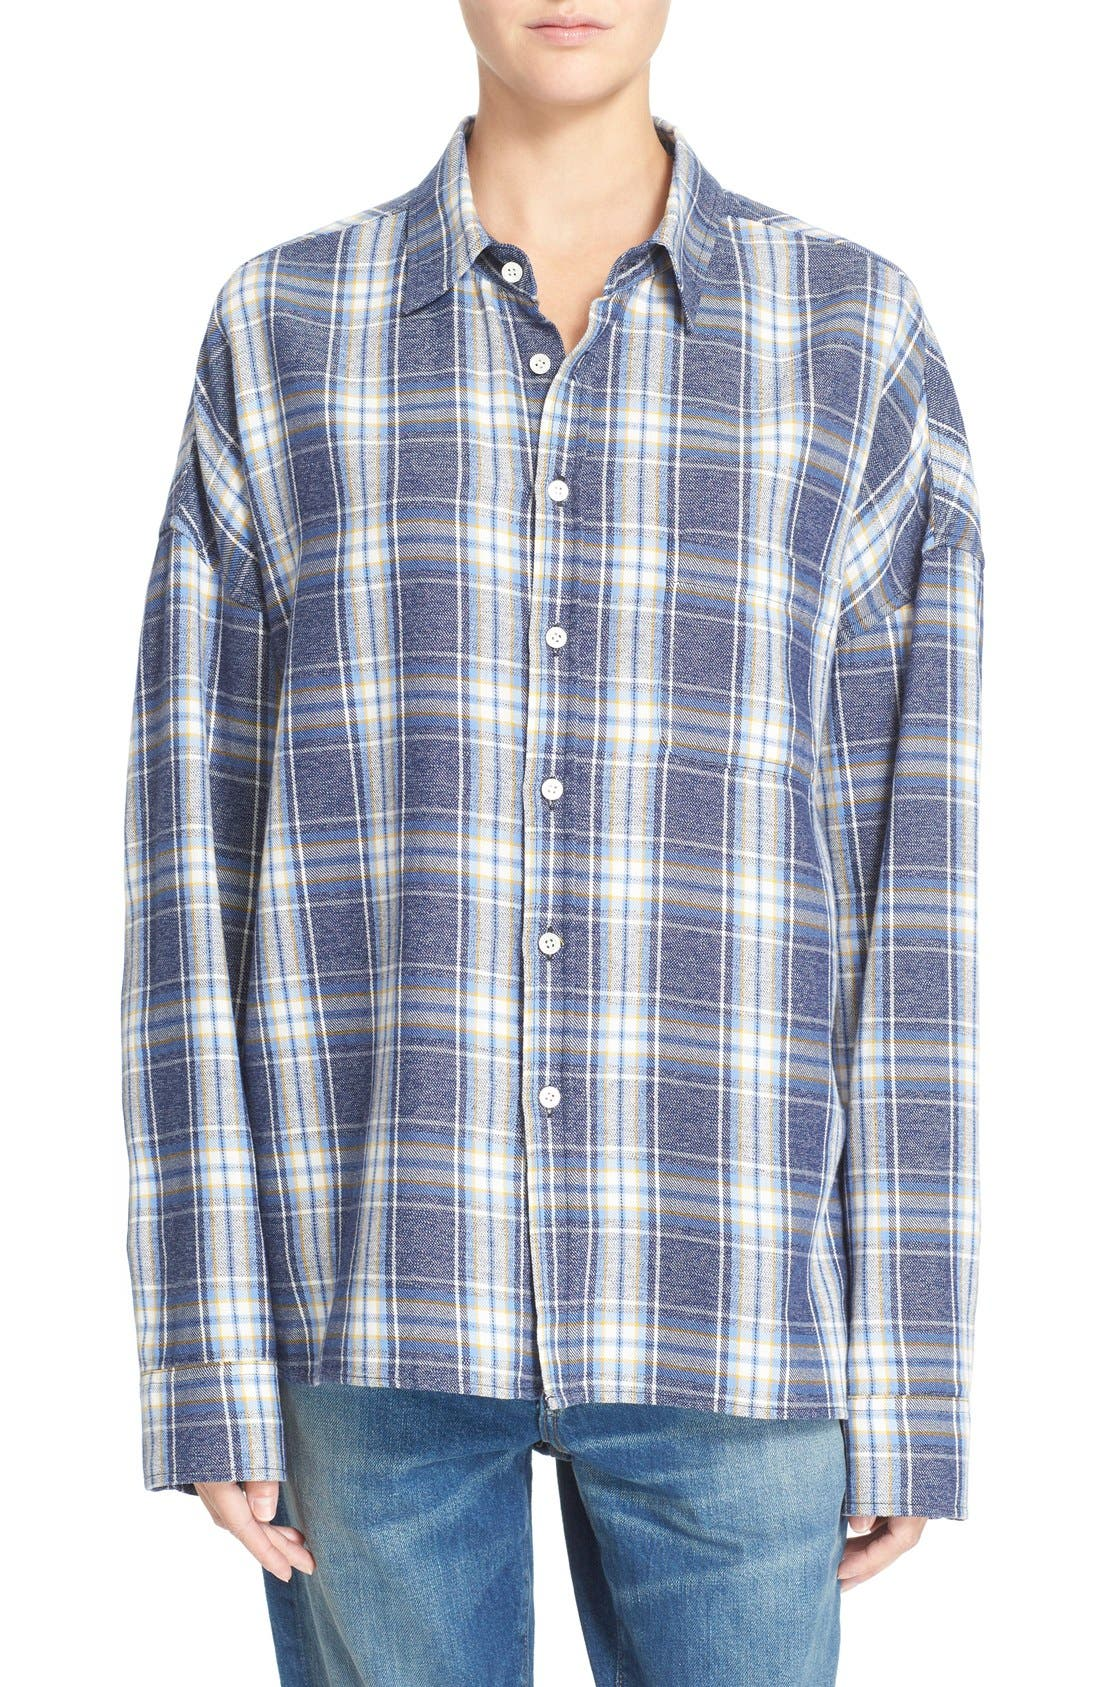 Main Image - 6397 'Lori' Cotton Flannel Shirt